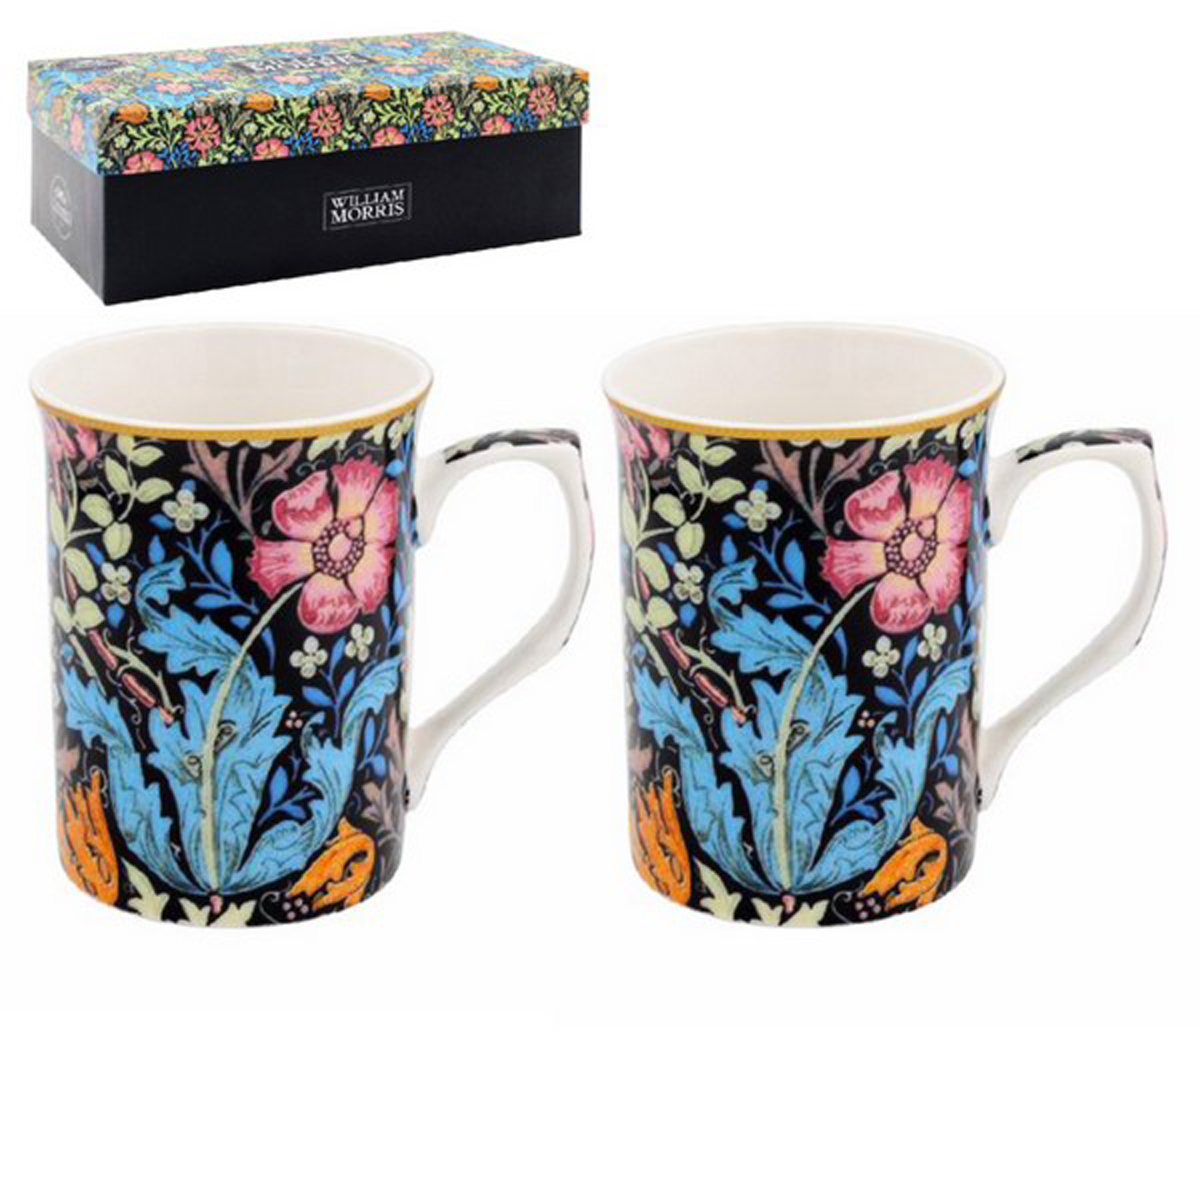 Coffret 2 mugs porcelaine \'William Morris Collection\' bleu multicolore (Compton) - 10x75 cm - [R2684]